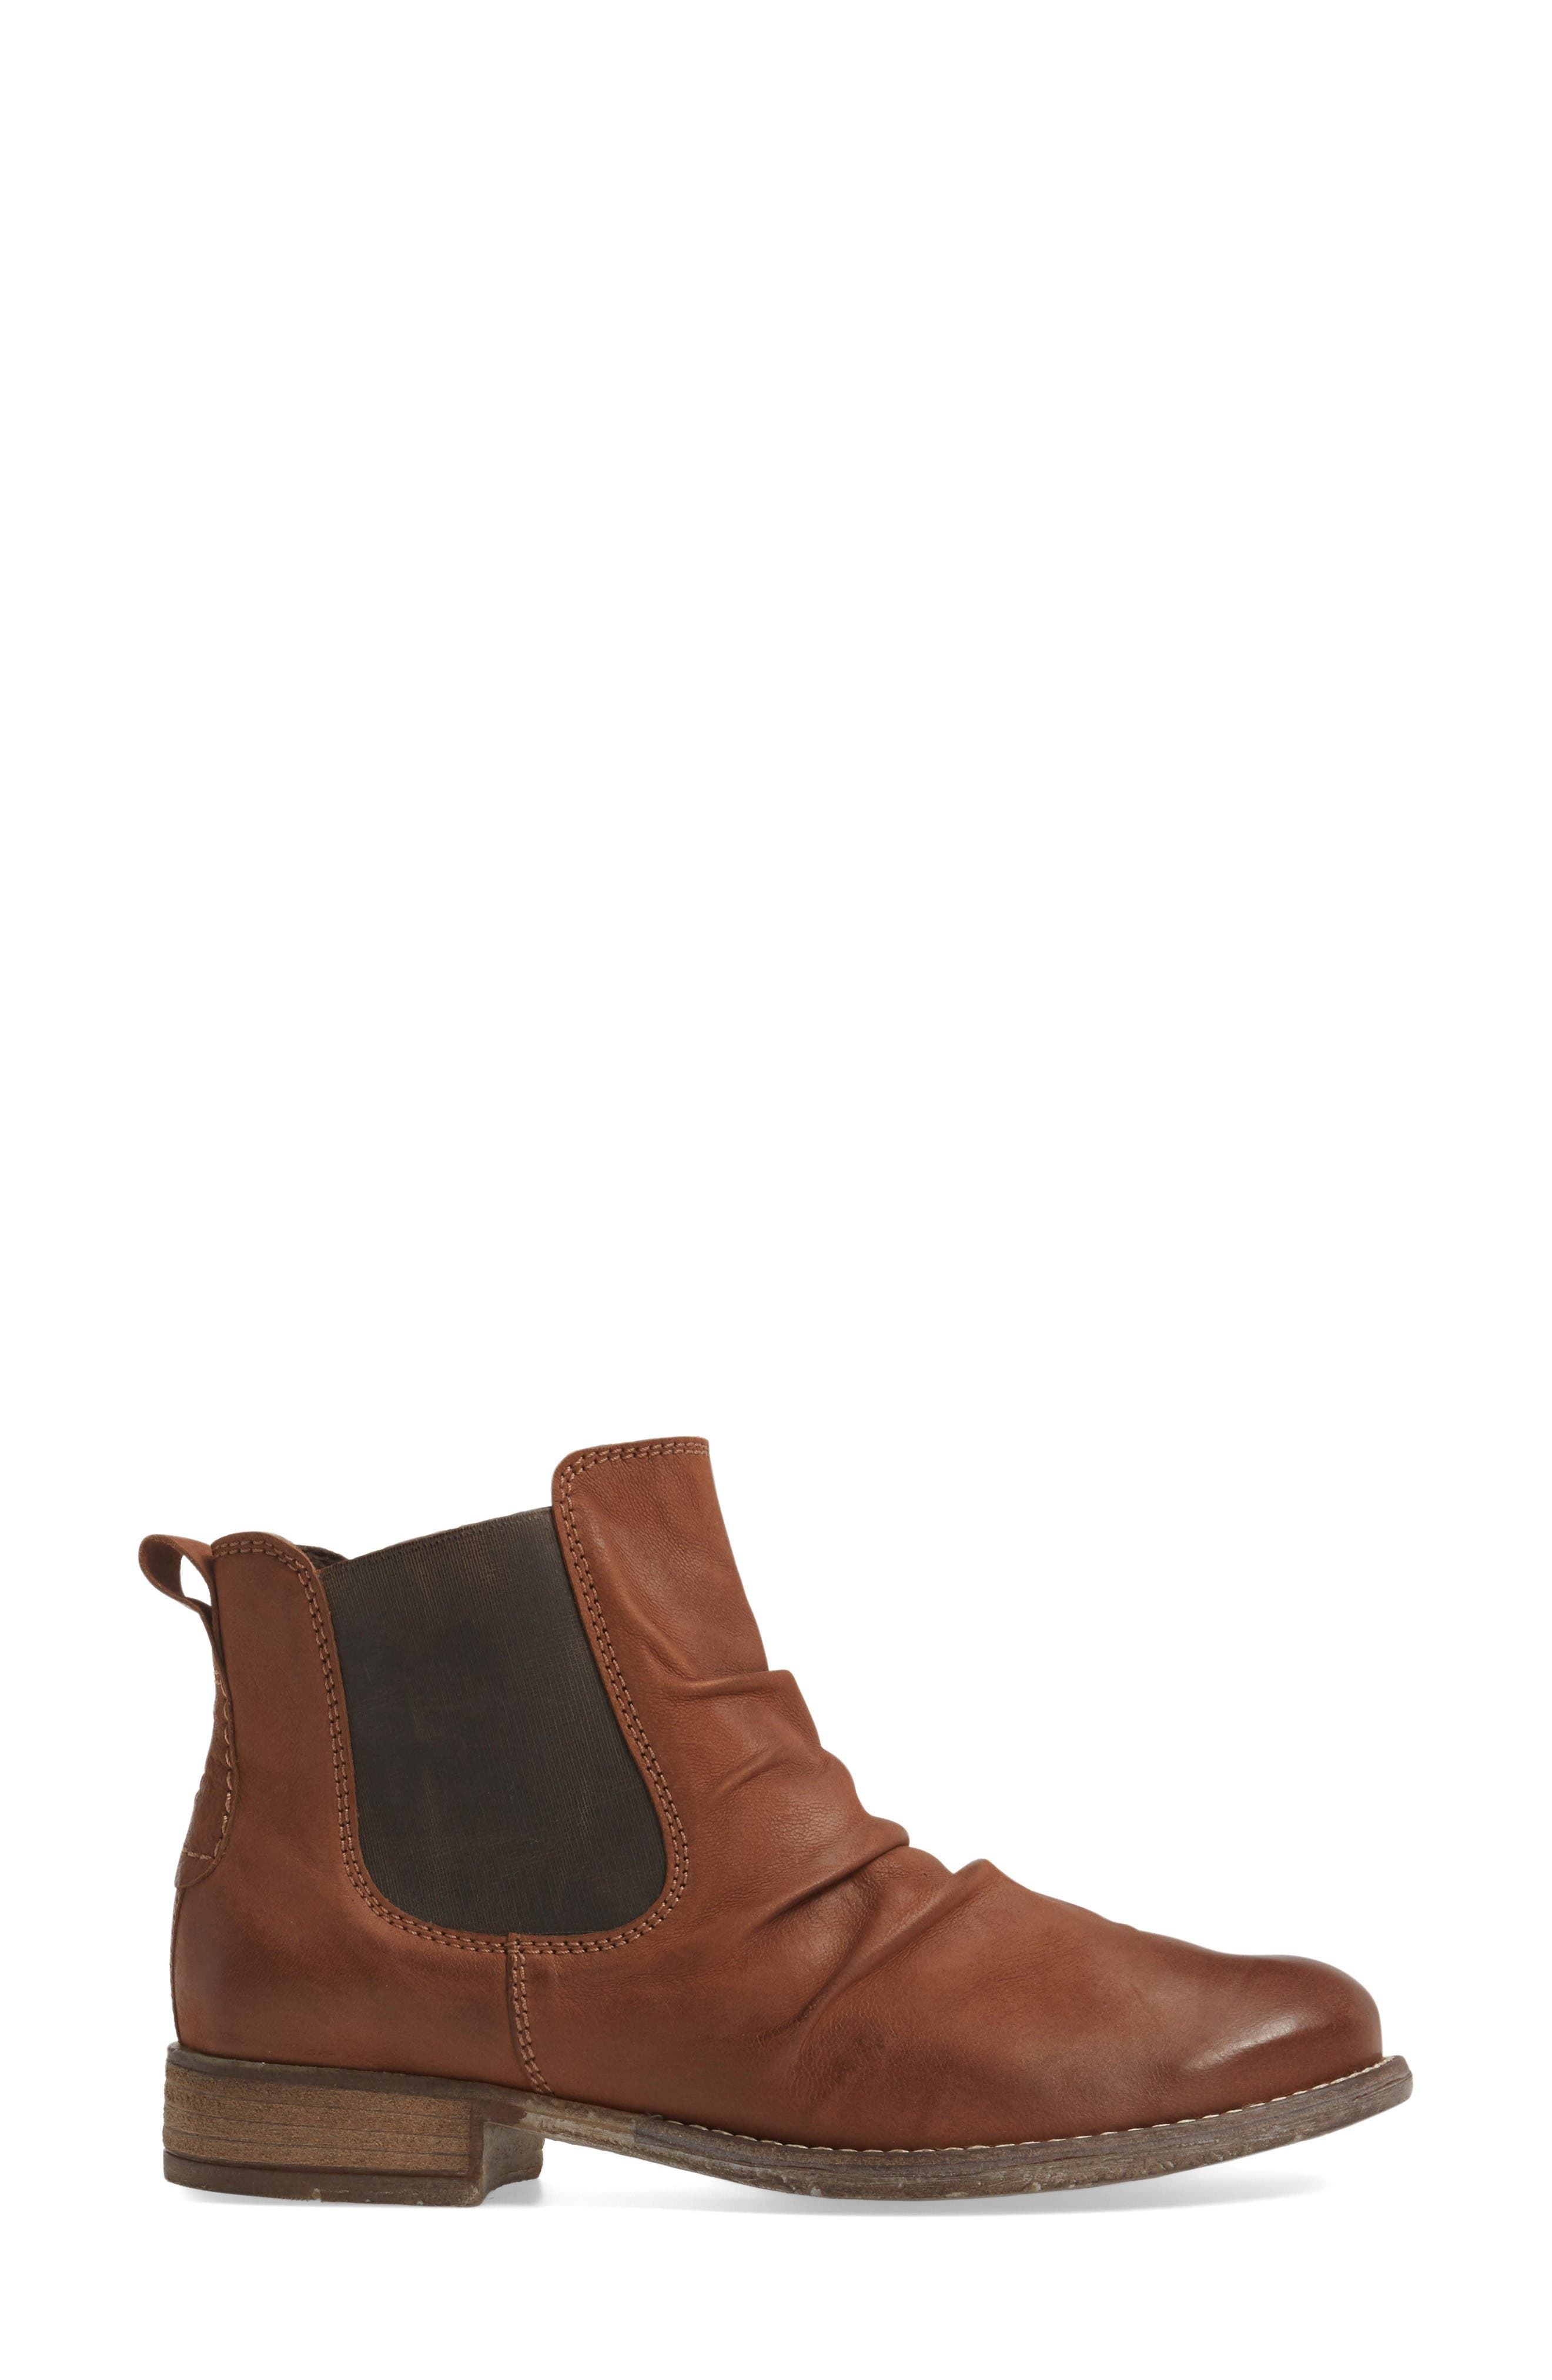 Sienna 59 Slouchy Chelsea Bootie,                             Alternate thumbnail 3, color,                             Castagne Leather